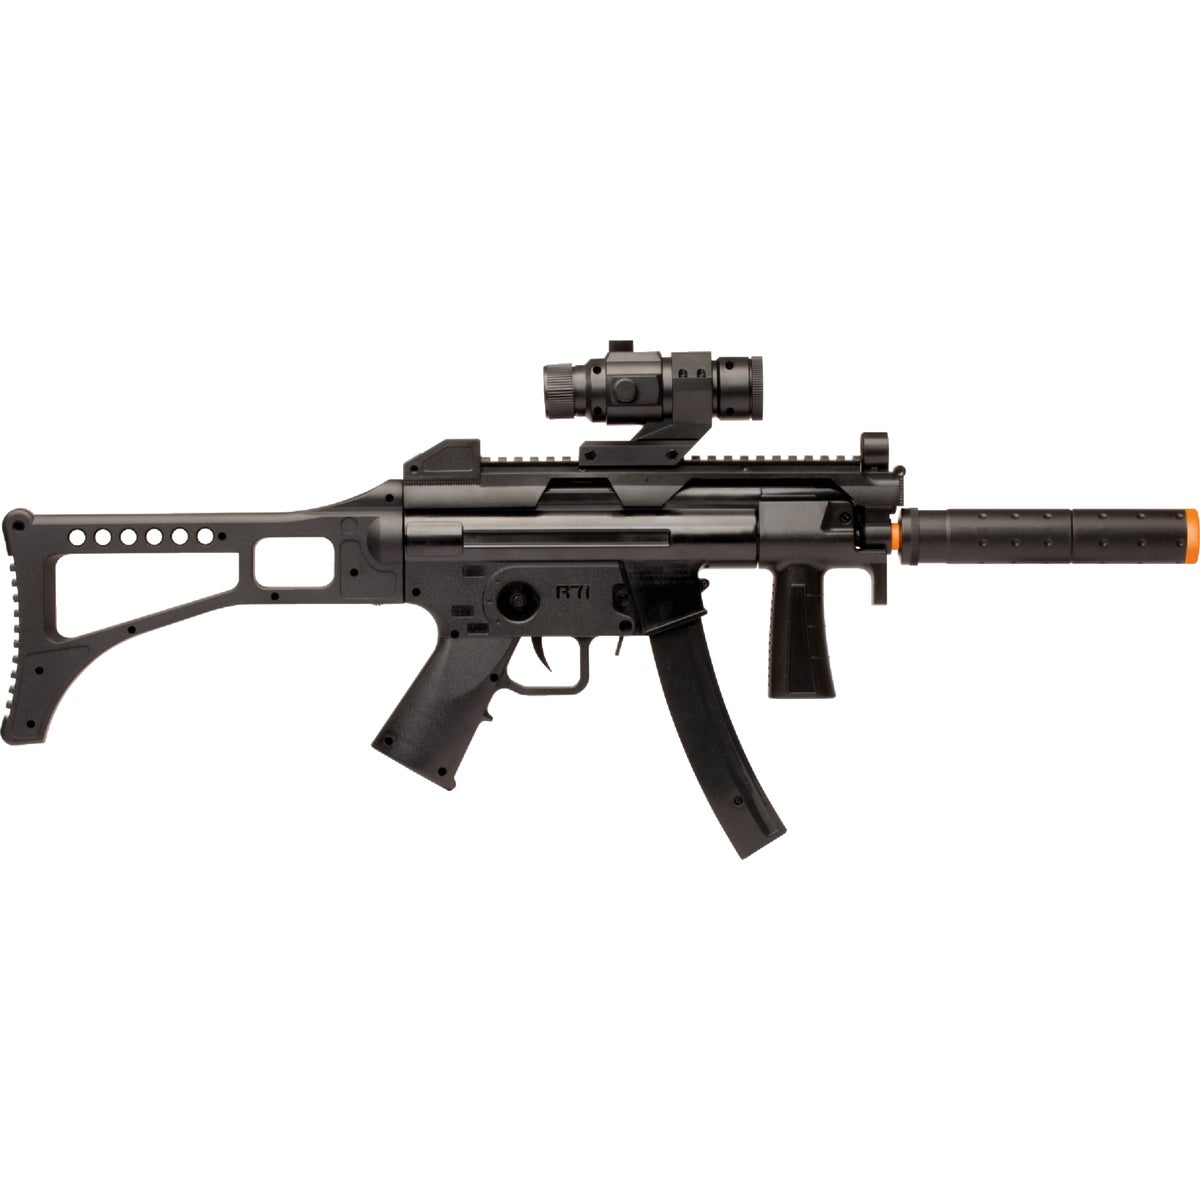 ELECTRONIC AIRSOFT RIFLE